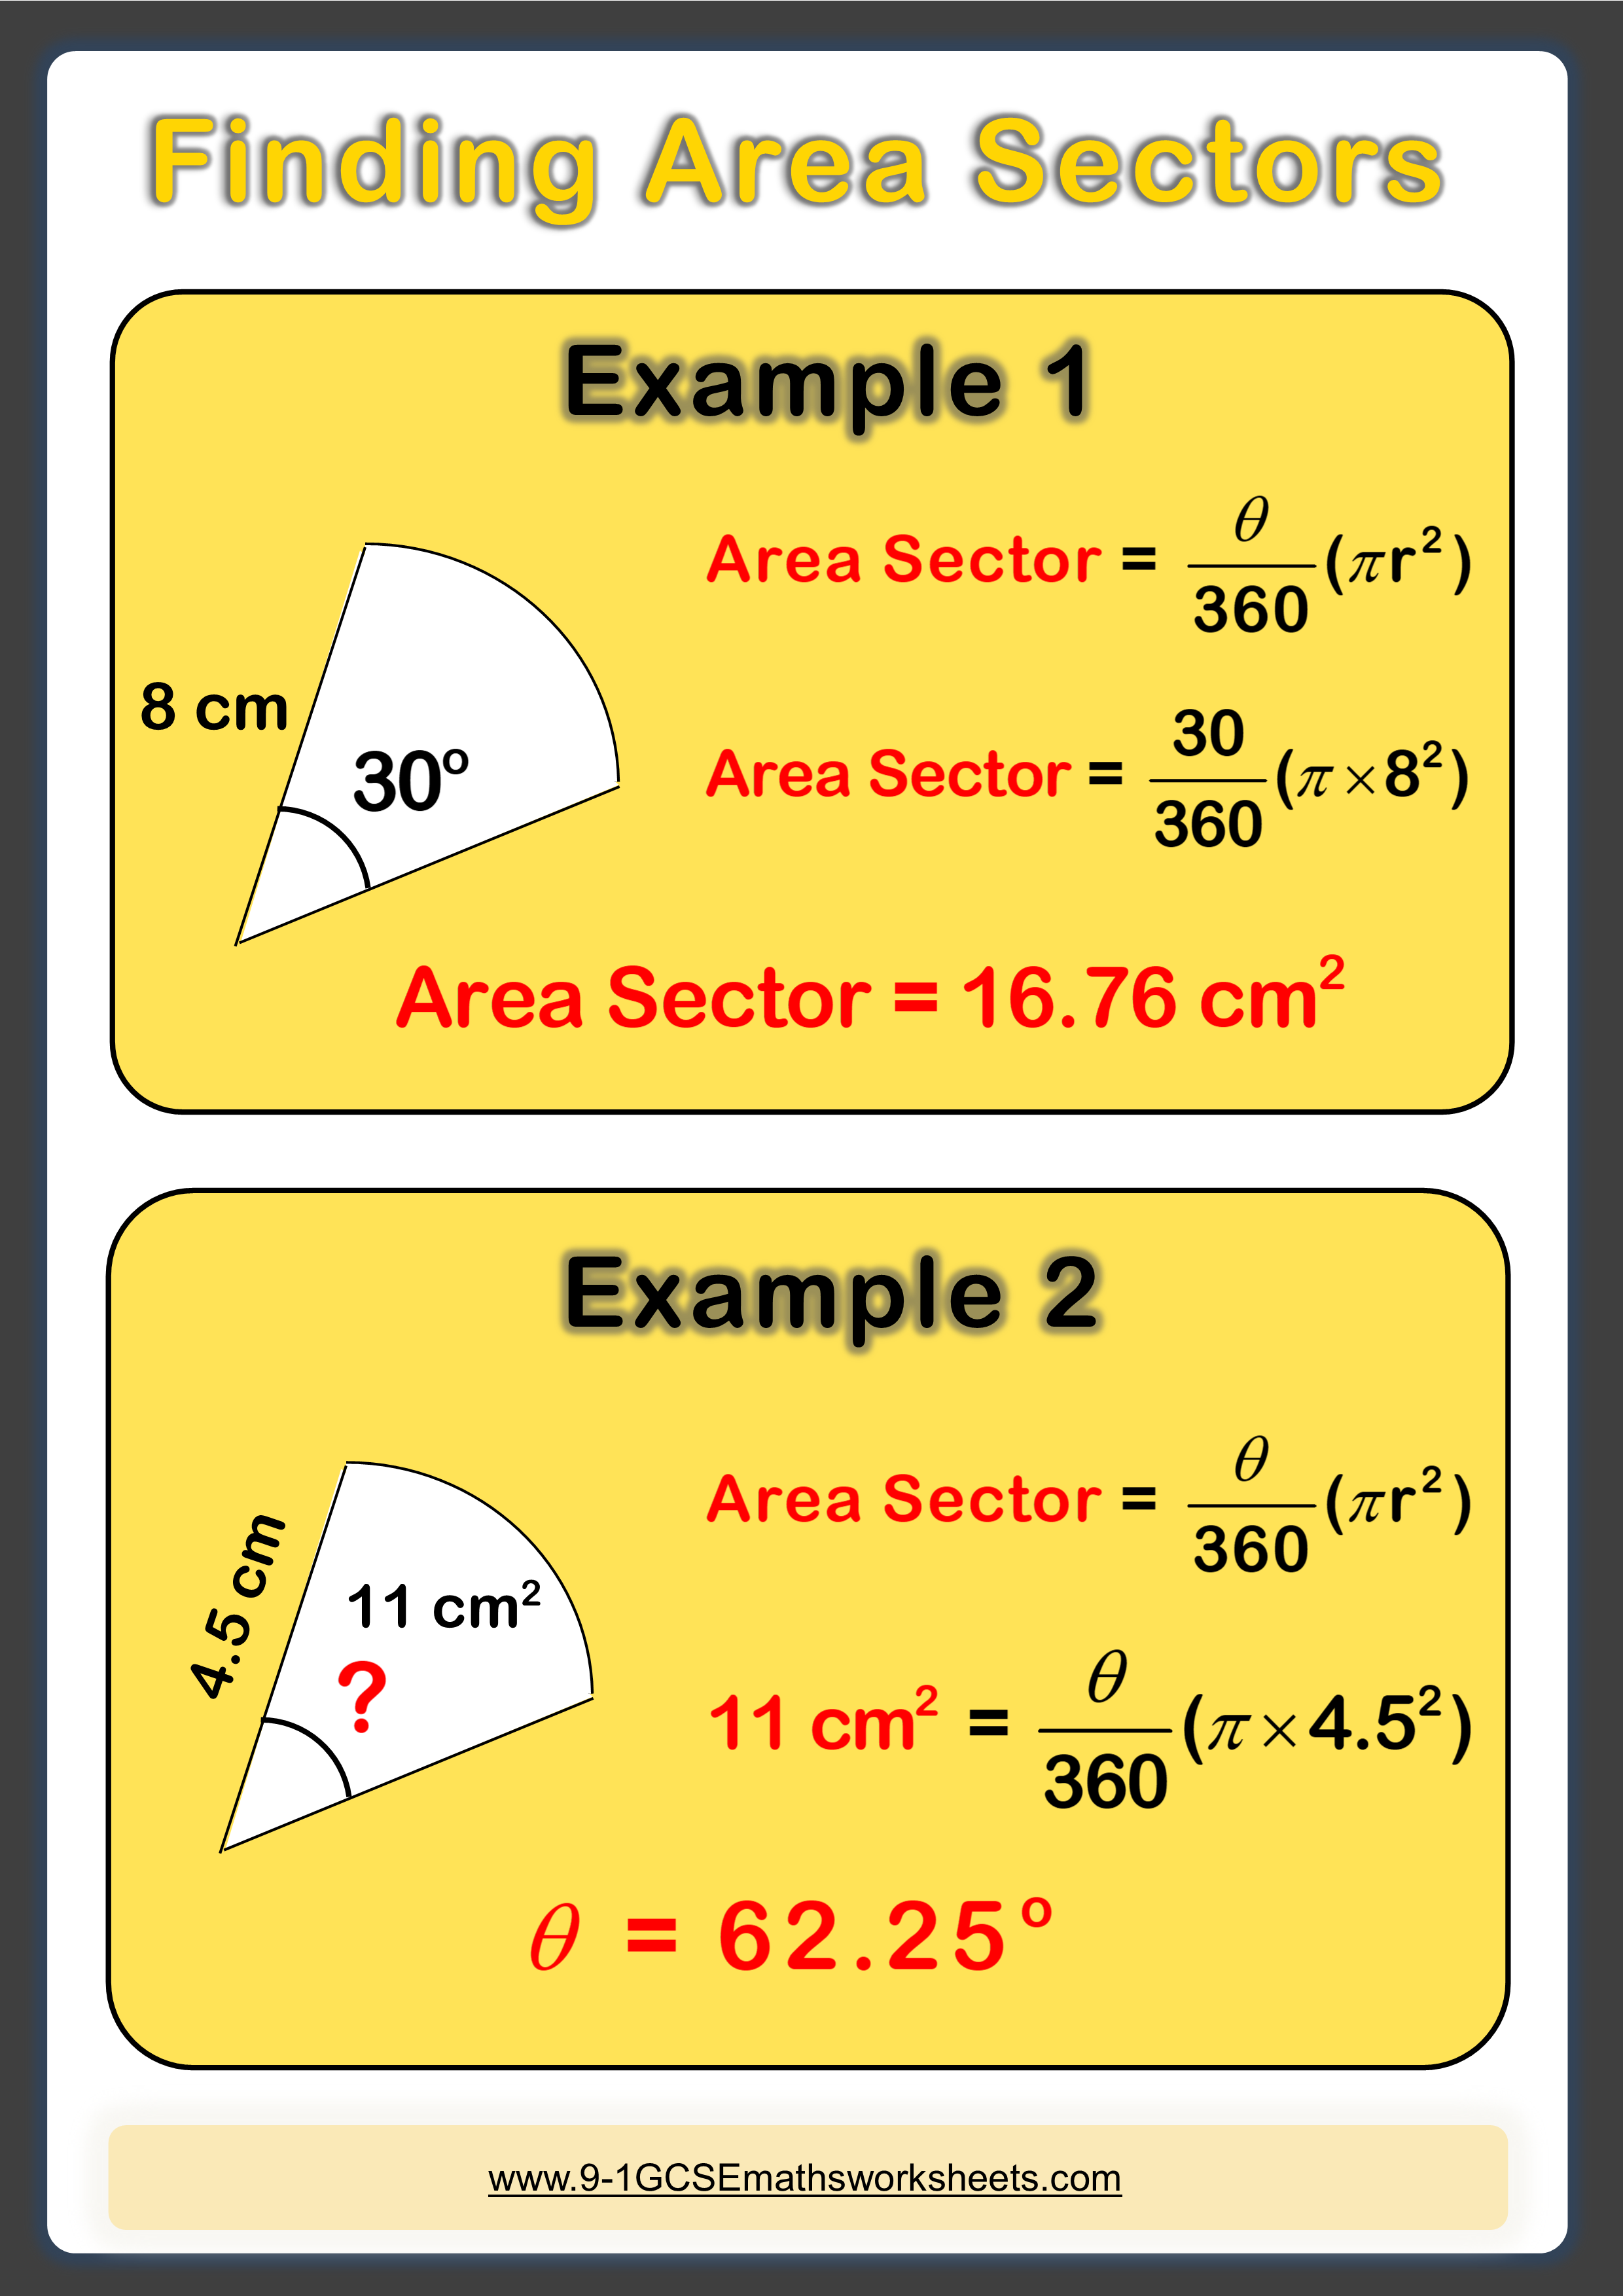 Finding Area Of Sectors Example